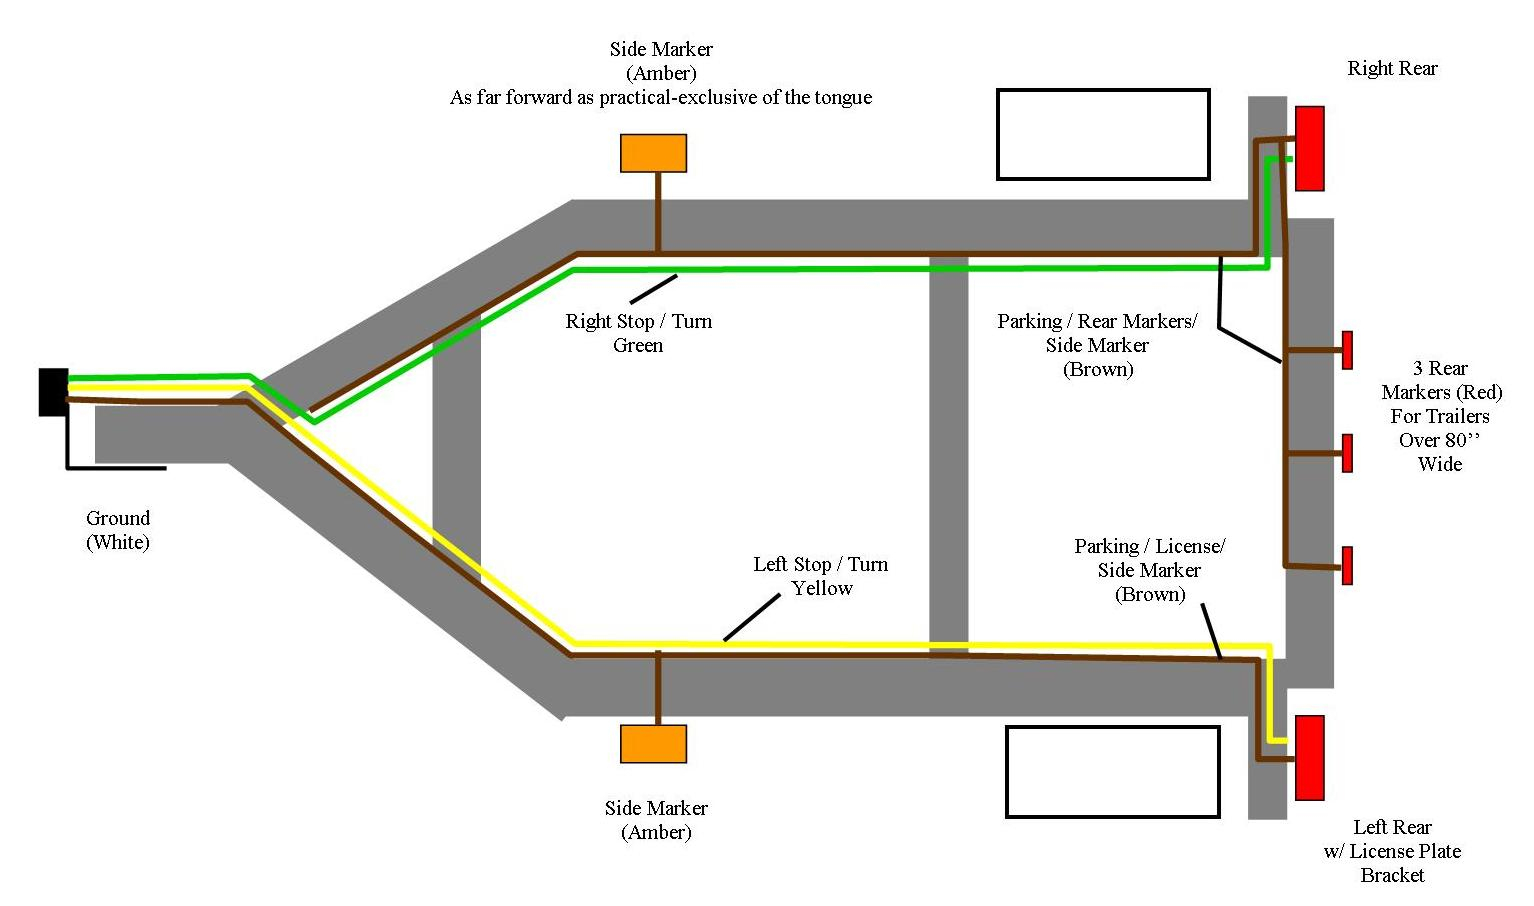 Tail Light Trailer Diagram Tow Wiring - Wiring Diagrams - Trailer Wiring Diagram Tail Lights